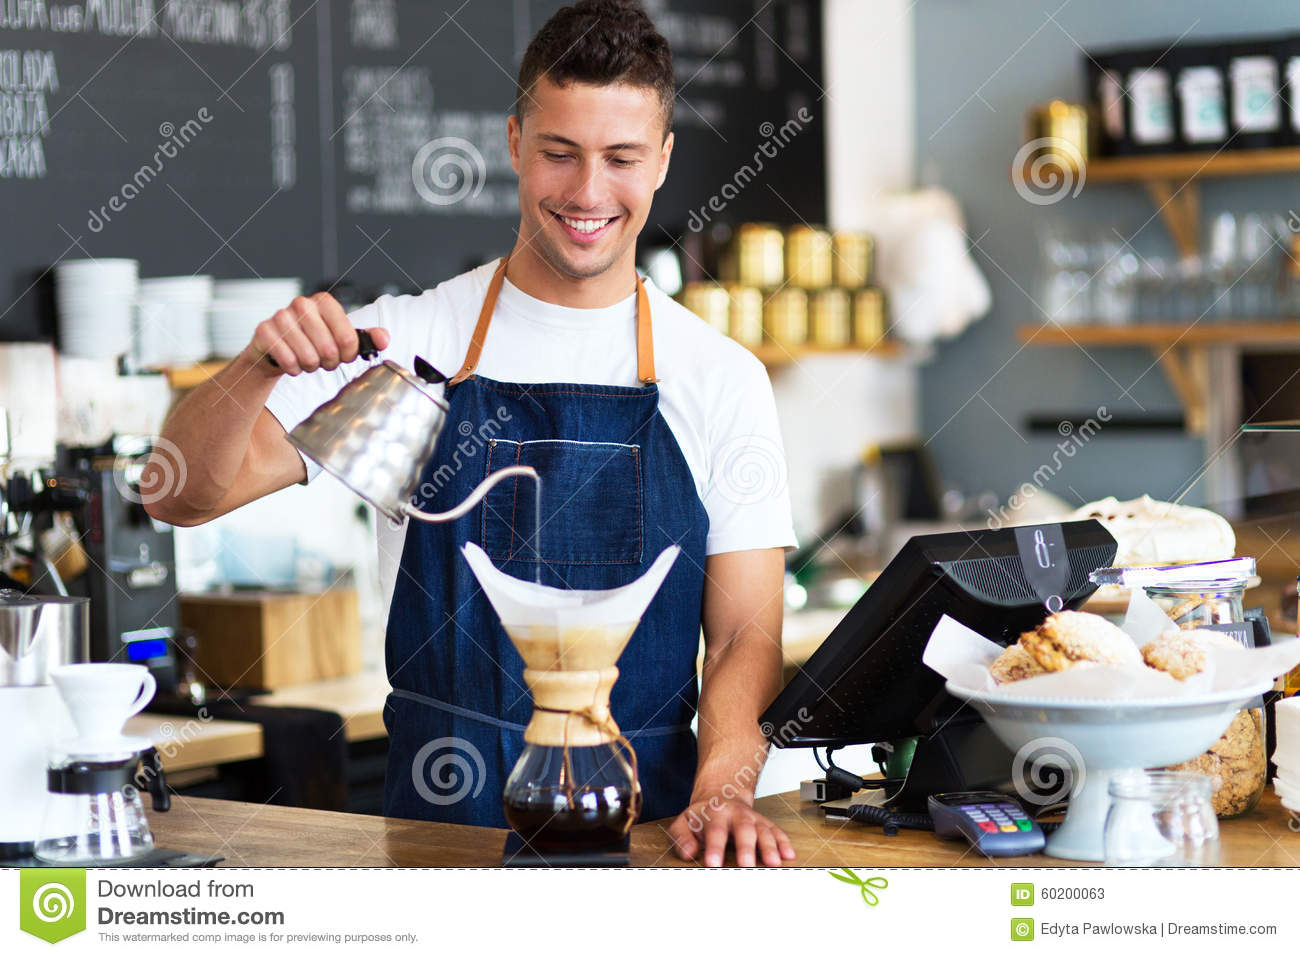 barista pouring water into coffee filter stock image image of food filter 60200063. Black Bedroom Furniture Sets. Home Design Ideas